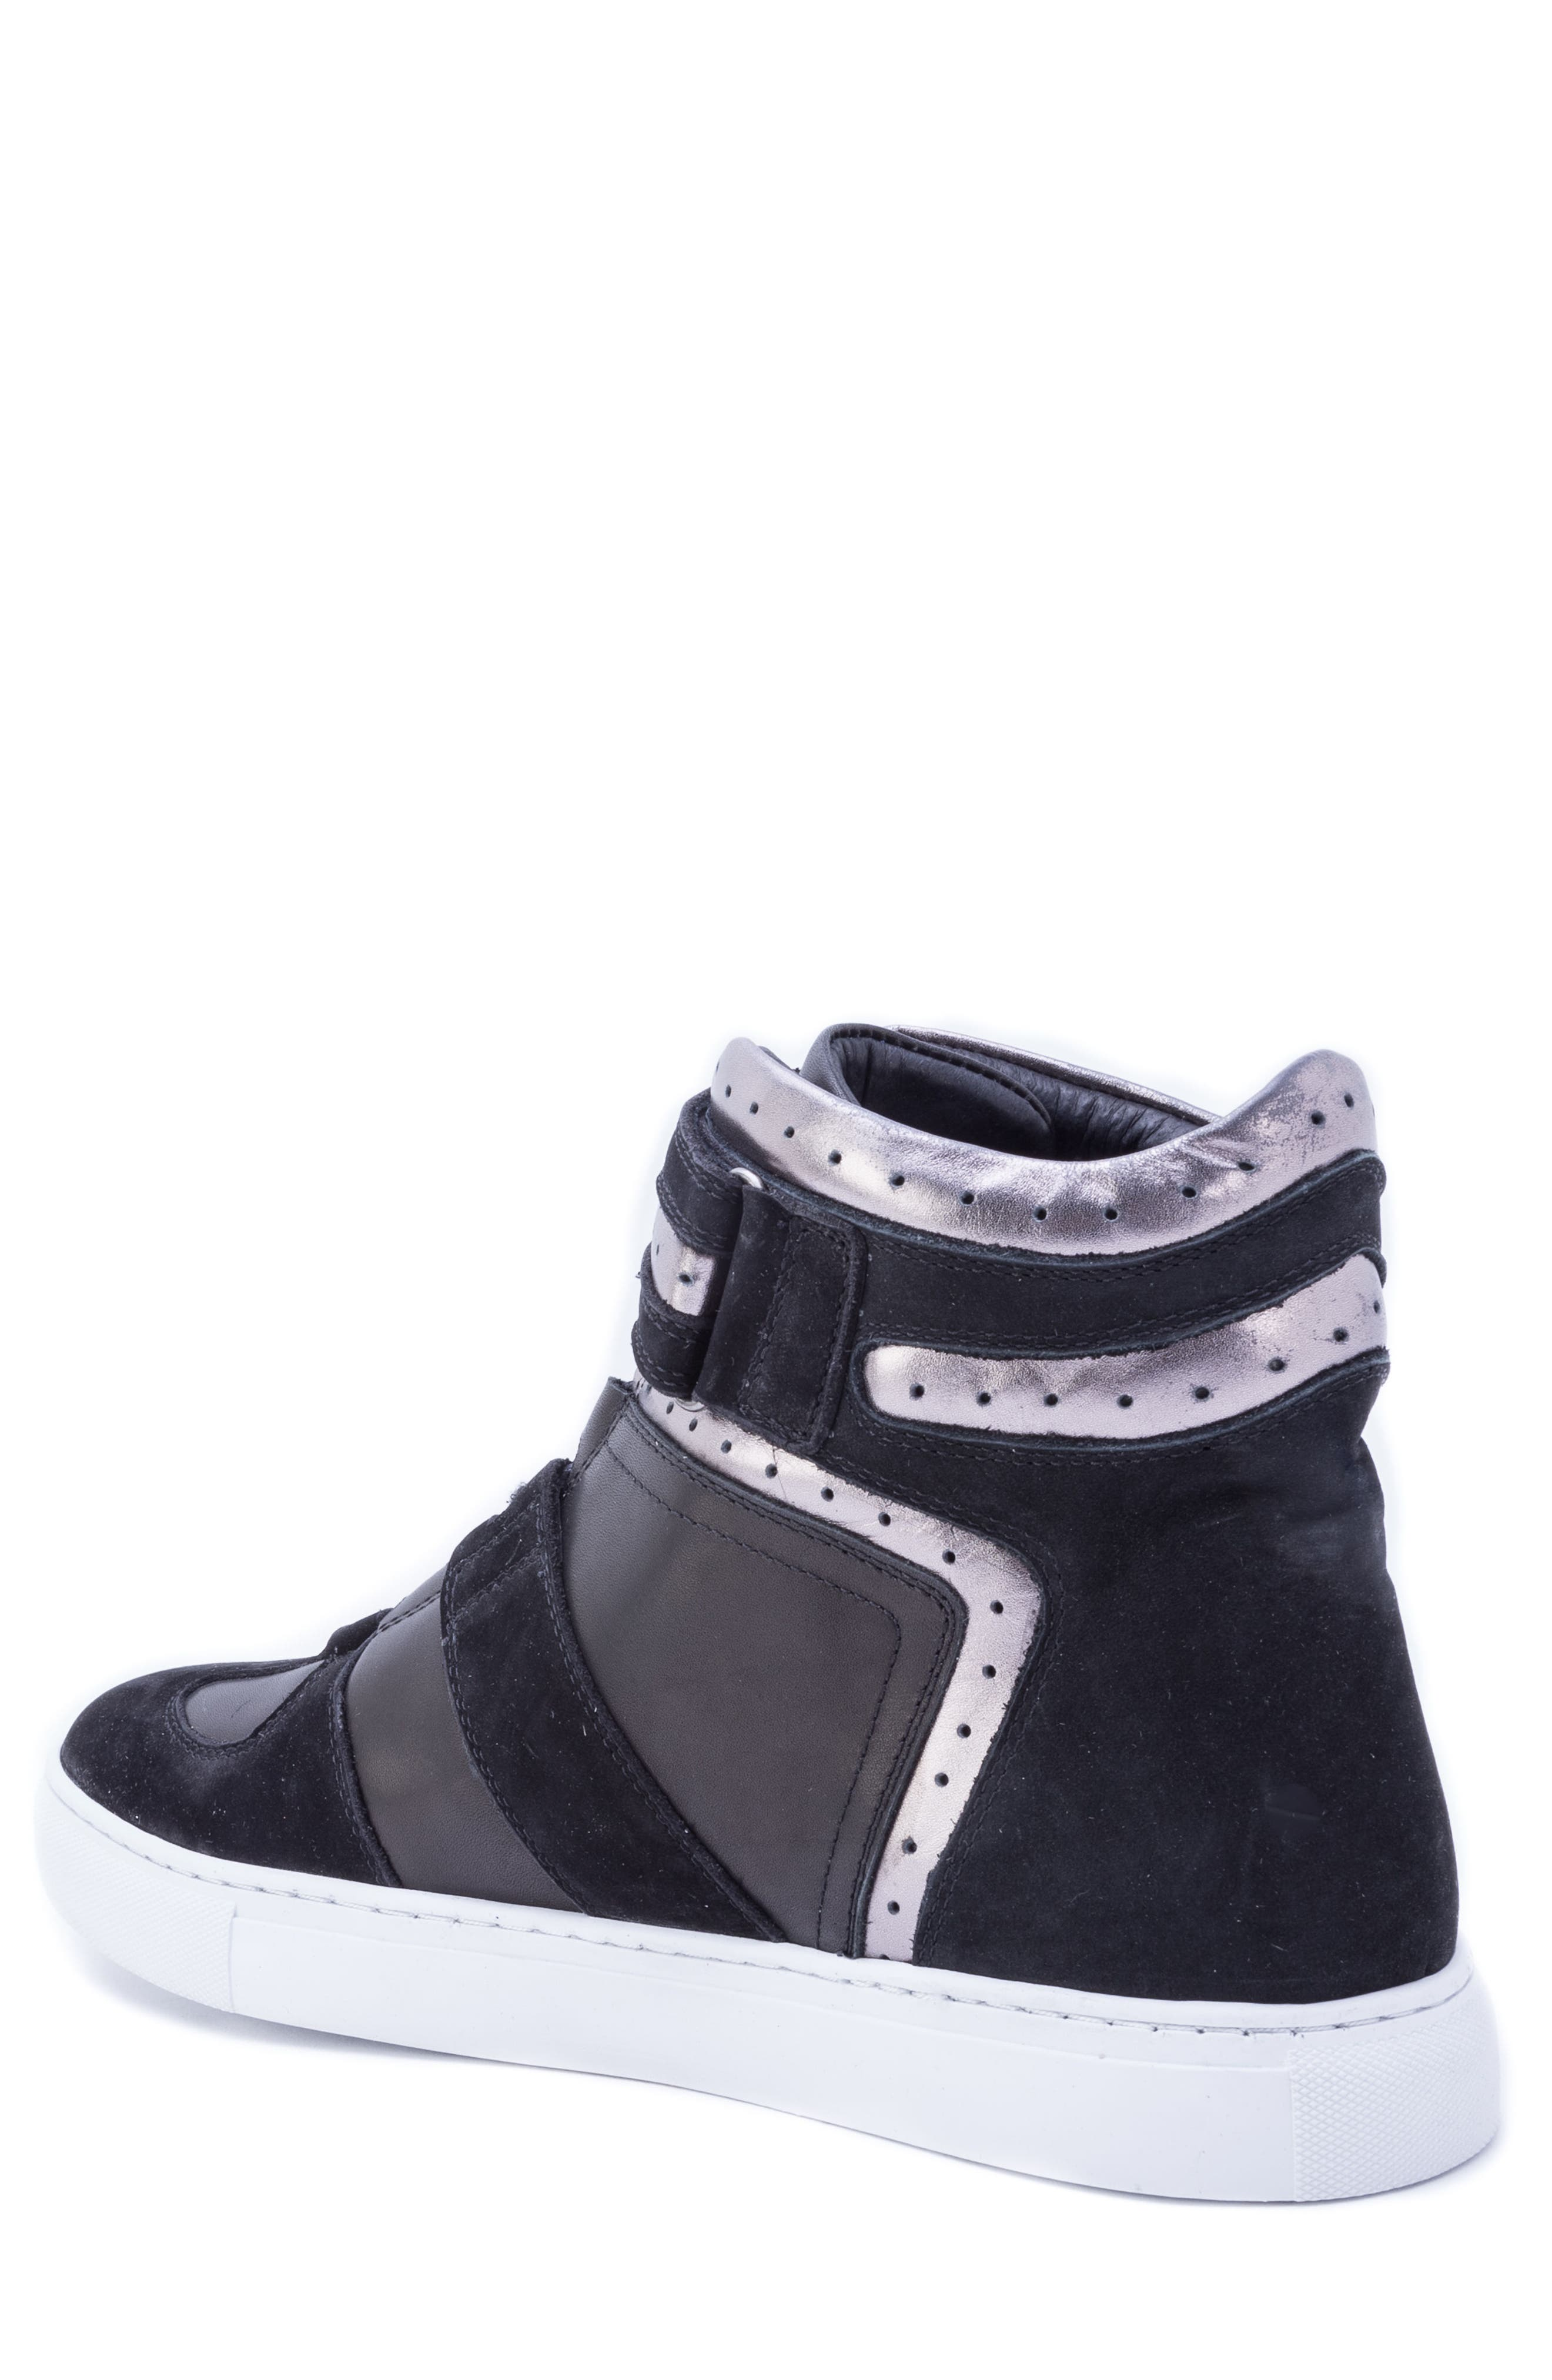 Belmondo High Top Sneaker,                             Alternate thumbnail 2, color,                             BLACK LEATHER/ SUEDE